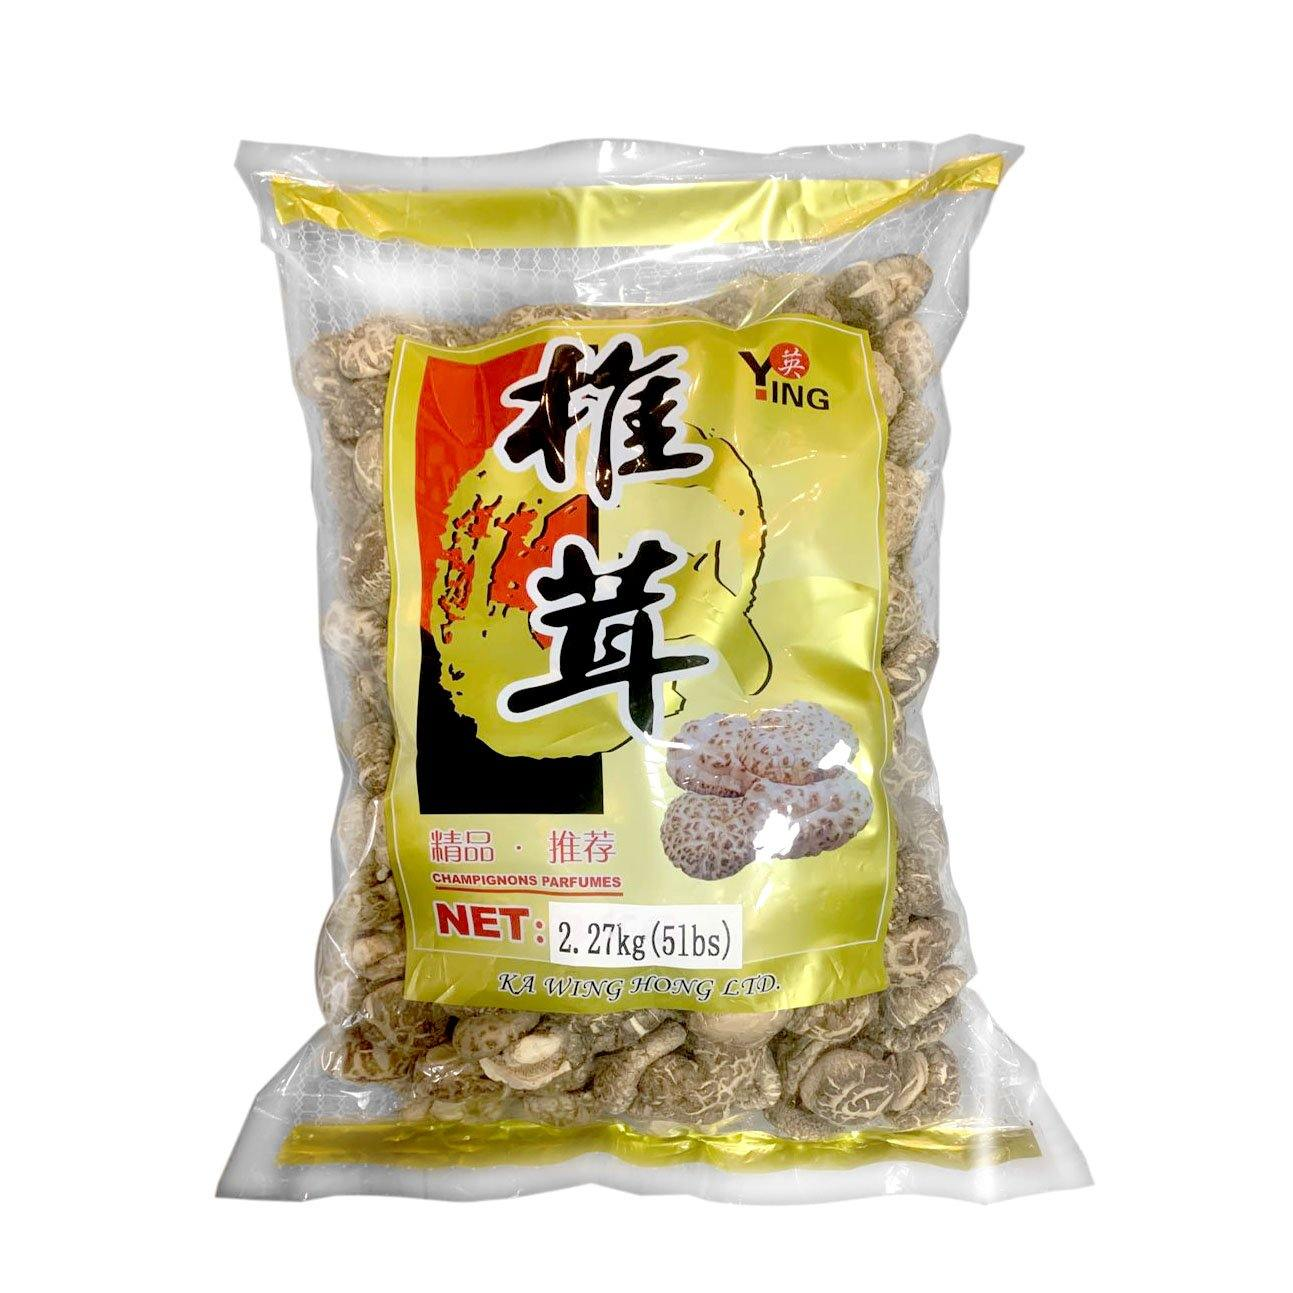 Ying Dried Shiitake Mushrooms 5.1 LBS (2.27 Kg) - 英牌椎茸 2.27 Kg